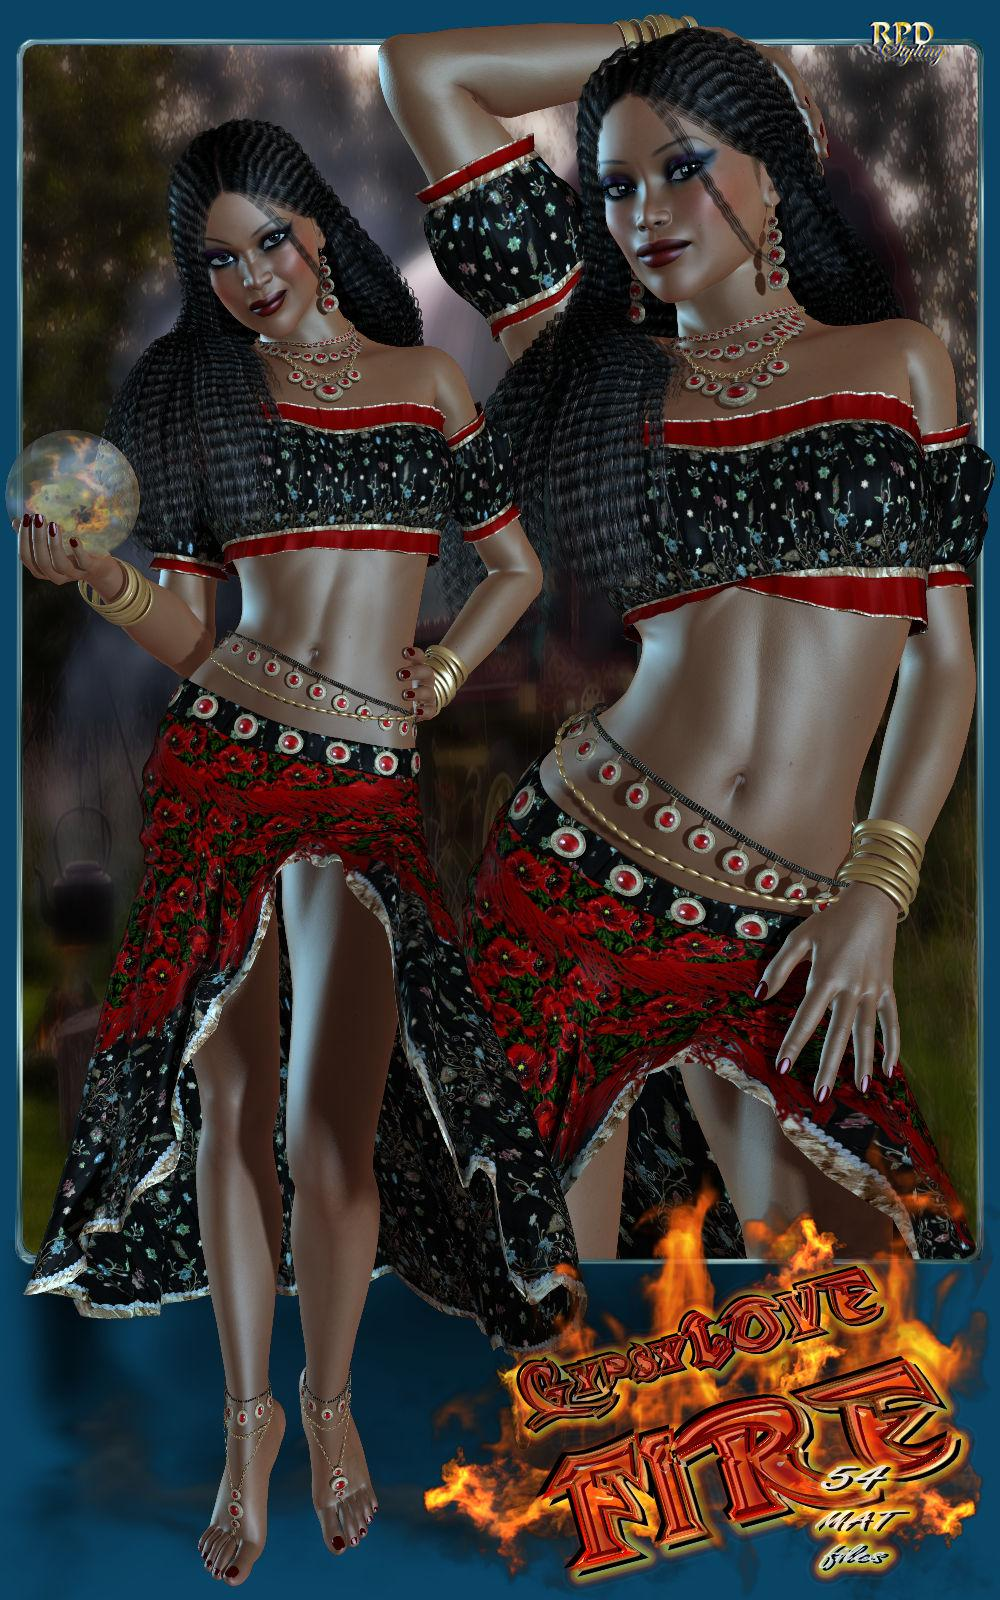 GypsyLove FIRE! by -renapd-